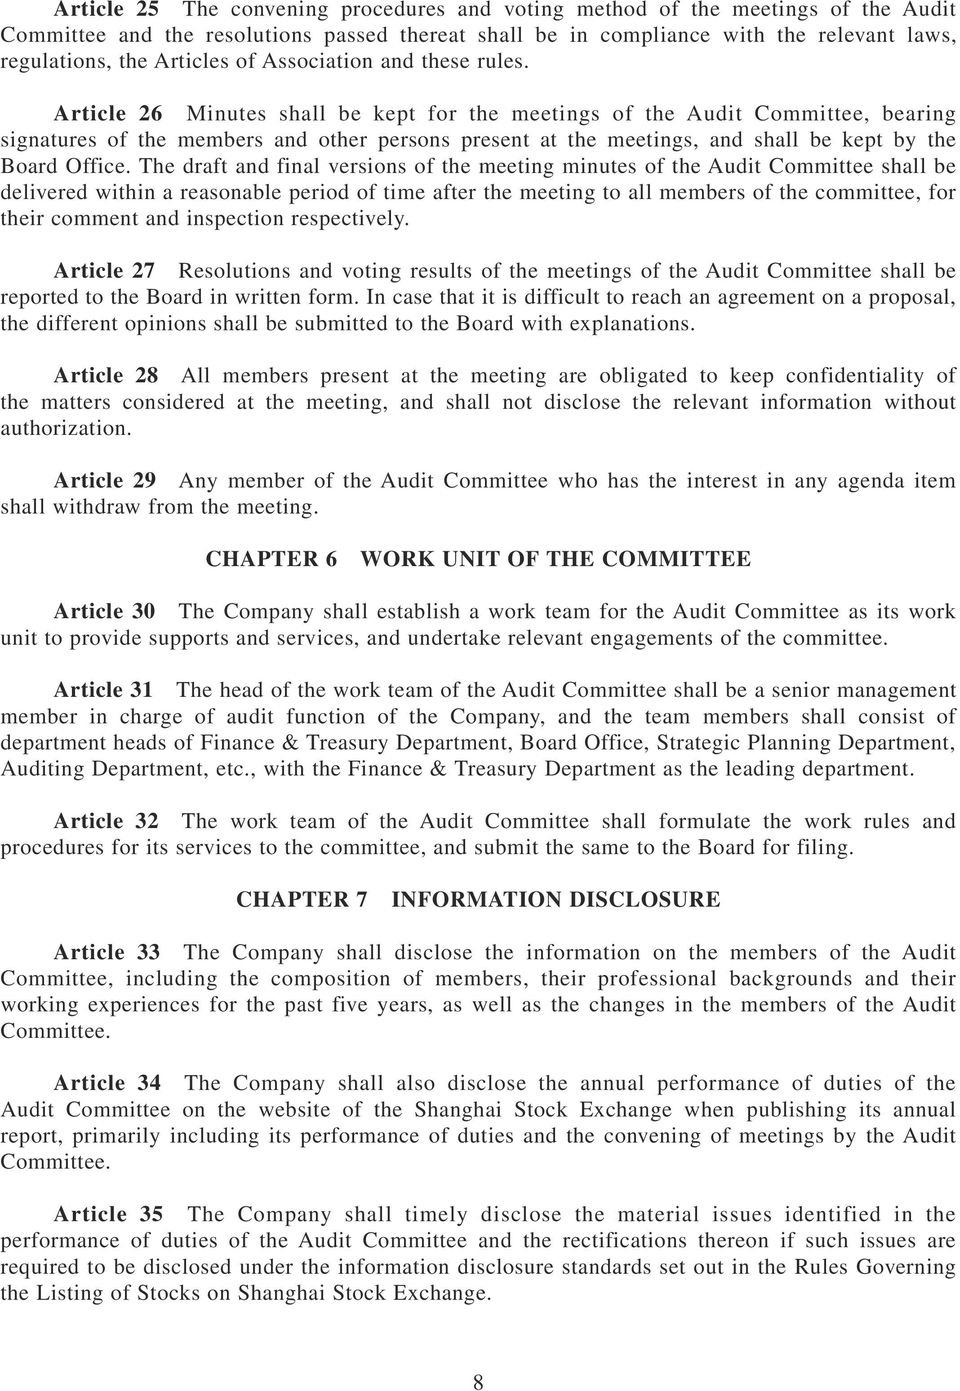 Article 26 Minutes shall be kept for the meetings of the Audit Committee, bearing signatures of the members and other persons present at the meetings, and shall be kept by the Board Office.